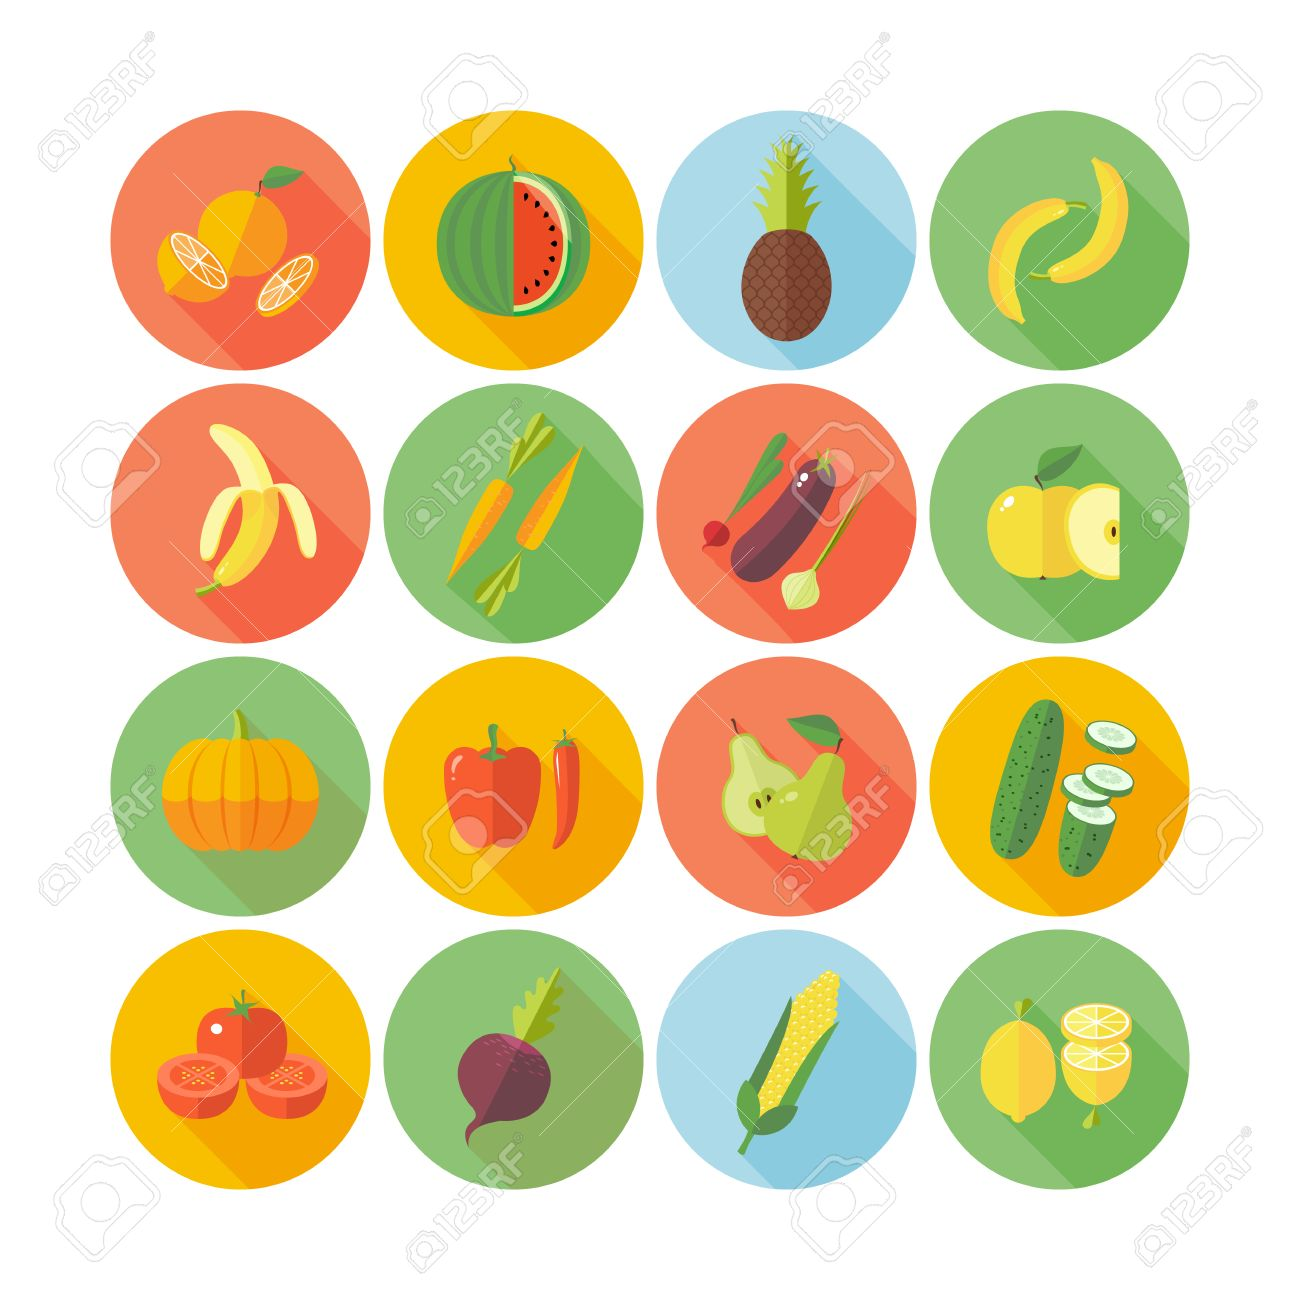 Set of flat design icons for fruits and vegetables. - 37358303